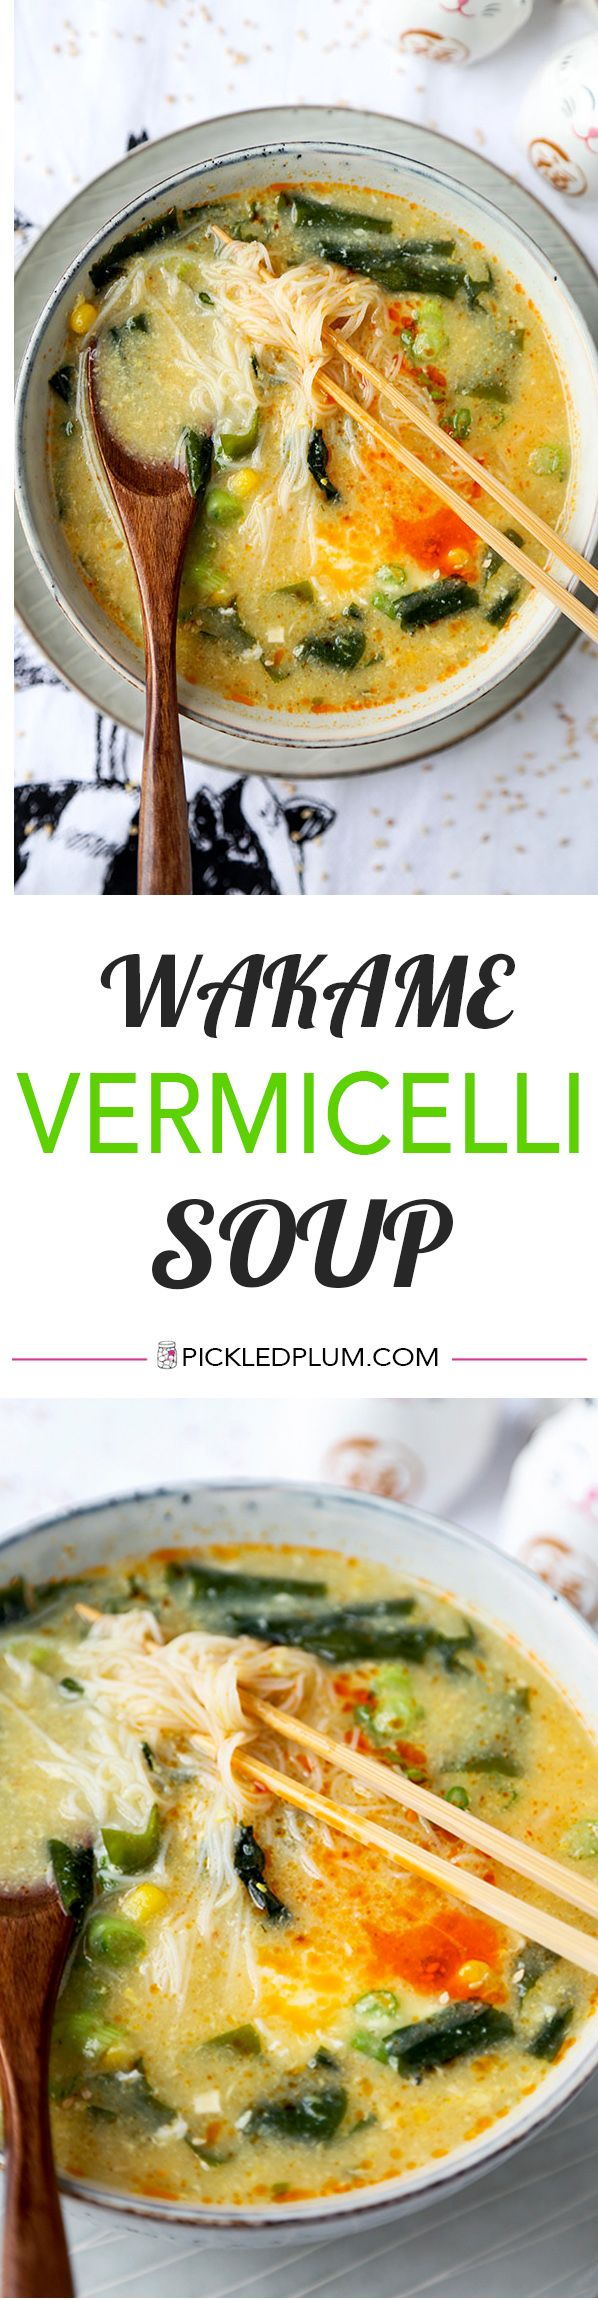 Wakame & Vermicelli Soup - This is a comforting, low caloric wakame and vermicelli soup, perfect for those looking for healthier snack options! Ready in 10 minutes from start to finish. Recipe, healthy, noodle soup, seaweed, snack | pickledplum.com